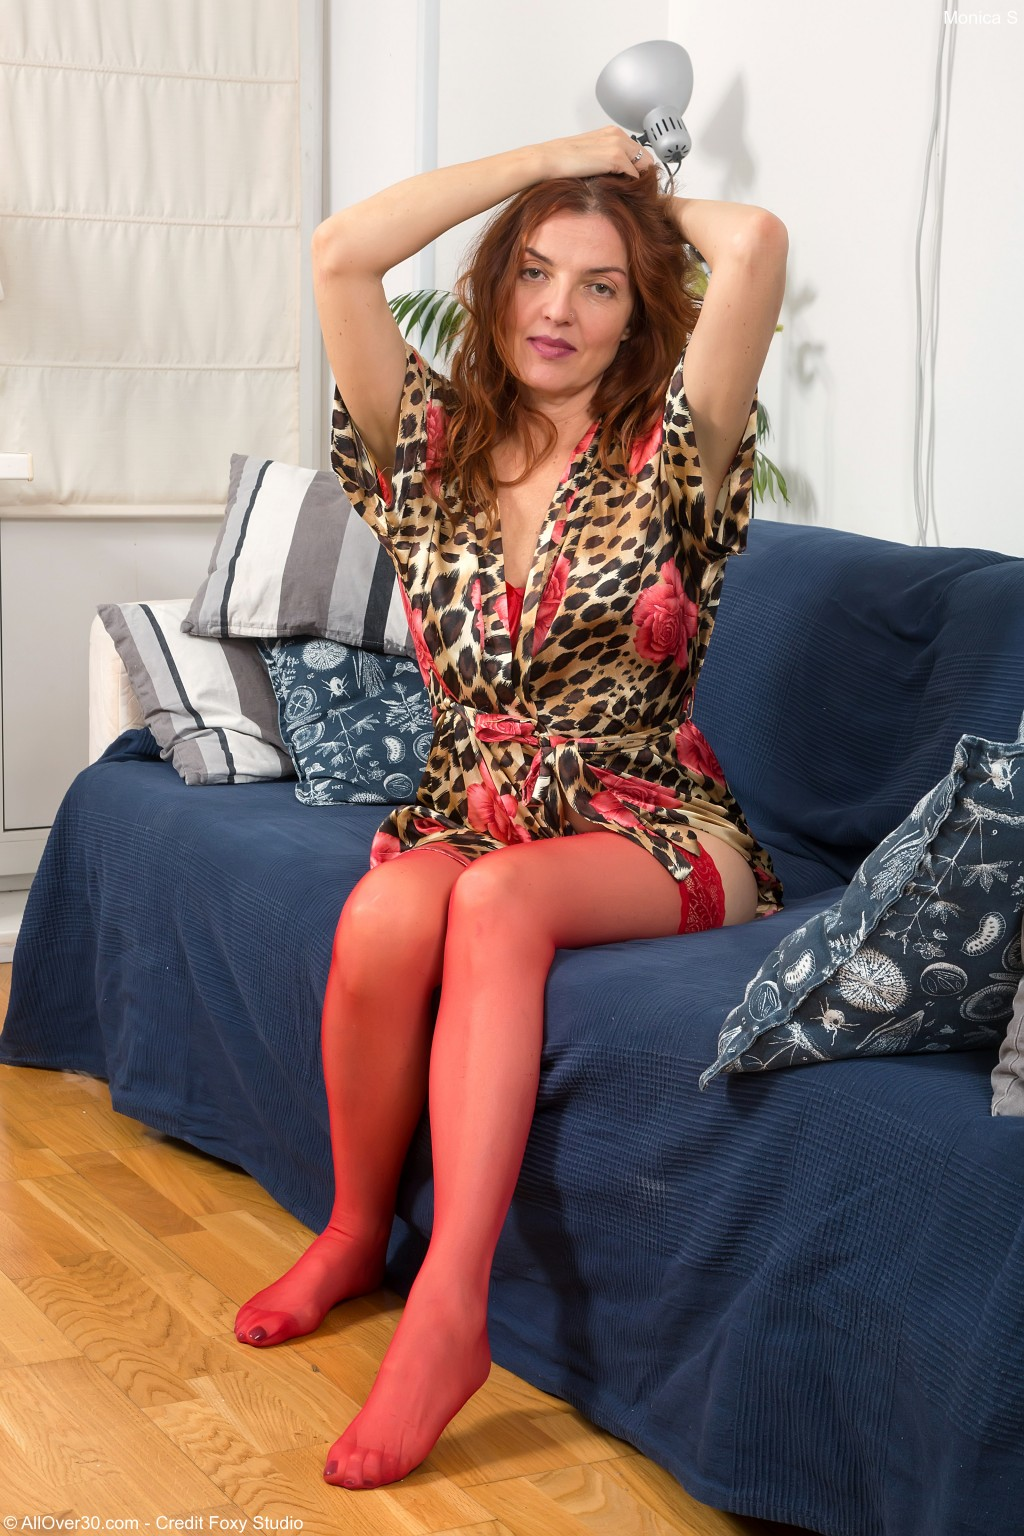 Hot porn gallery of Sexy mature Monica S in stockings